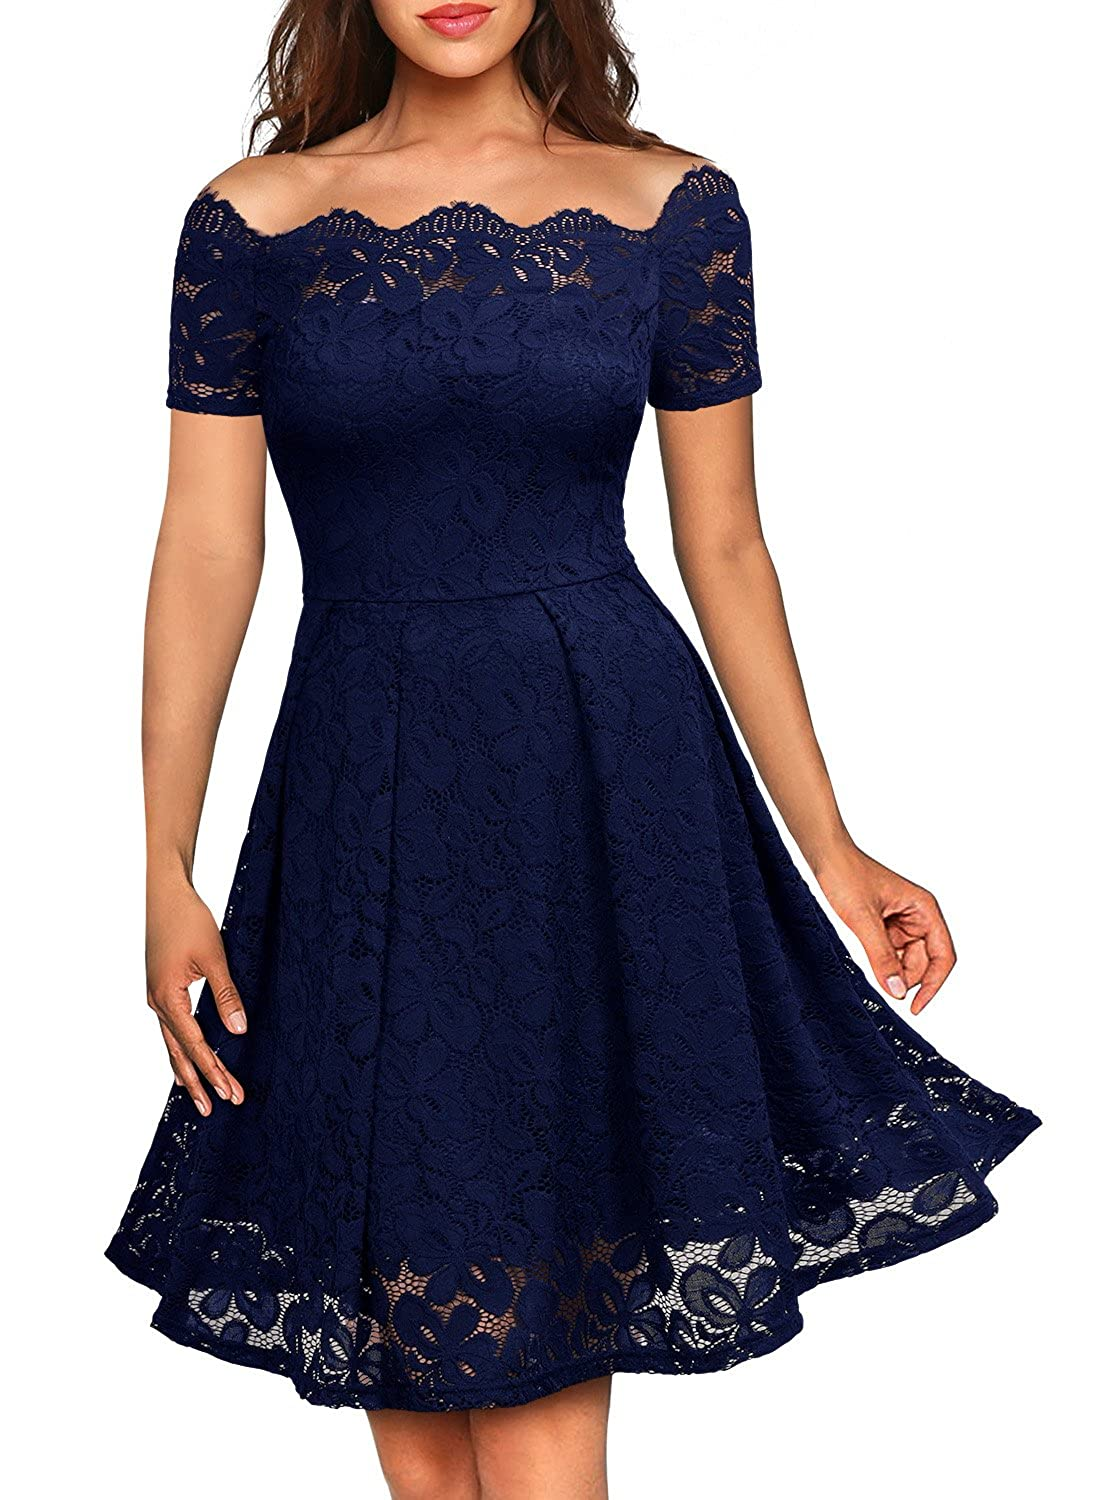 9b27598a95 Amazon.com  MISSMAY Women s Vintage Floral Lace Boat Neck Cocktail Formal  Swing Dress  Clothing